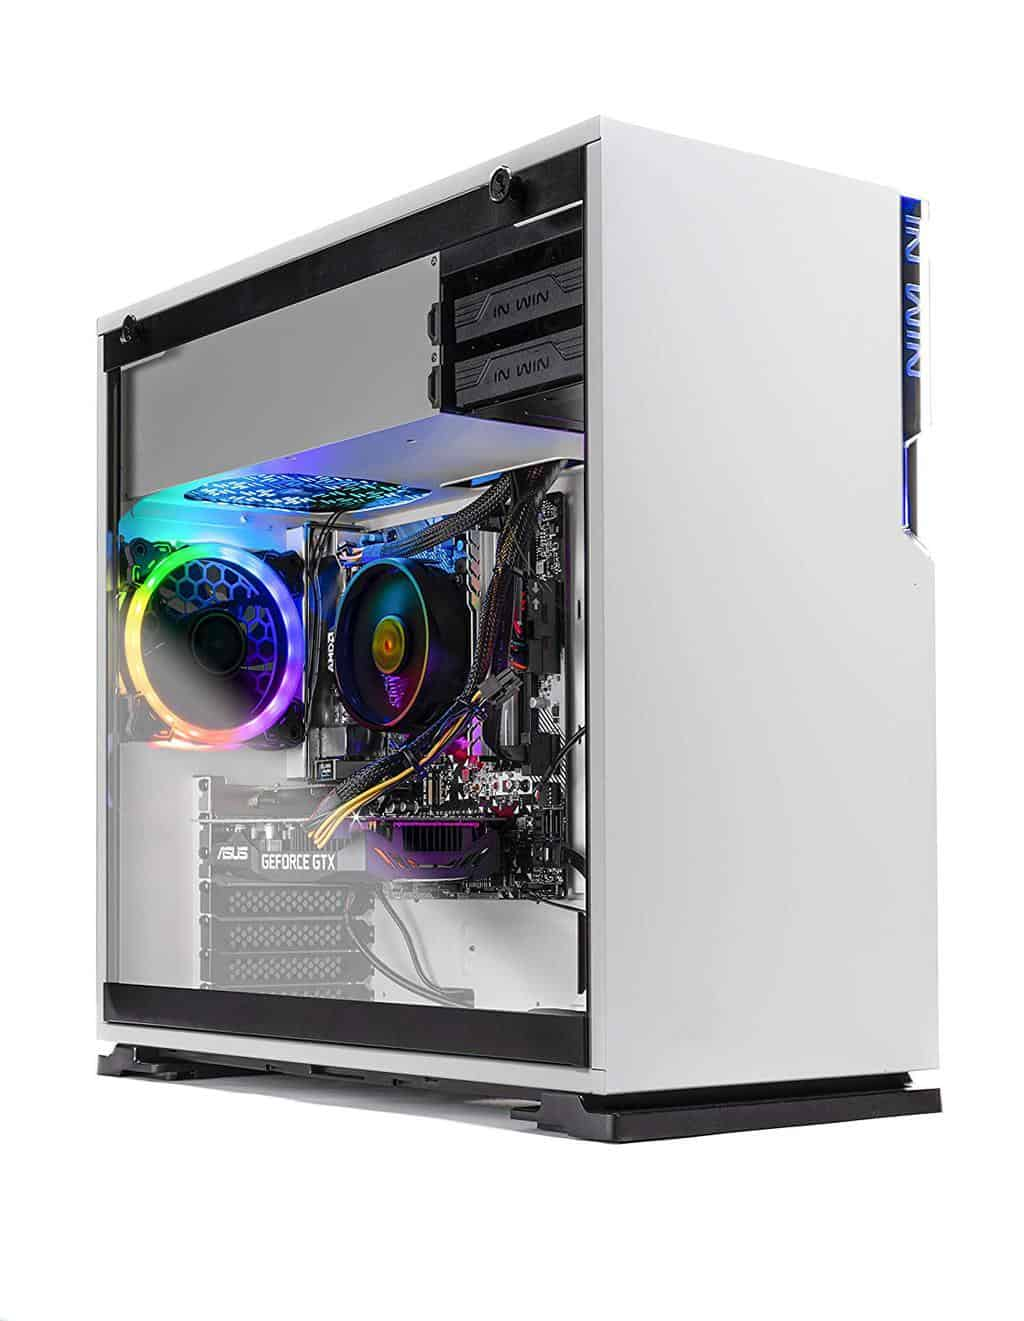 Best Prebuilt Gaming PC Under $1000 - Top 5 Desktops